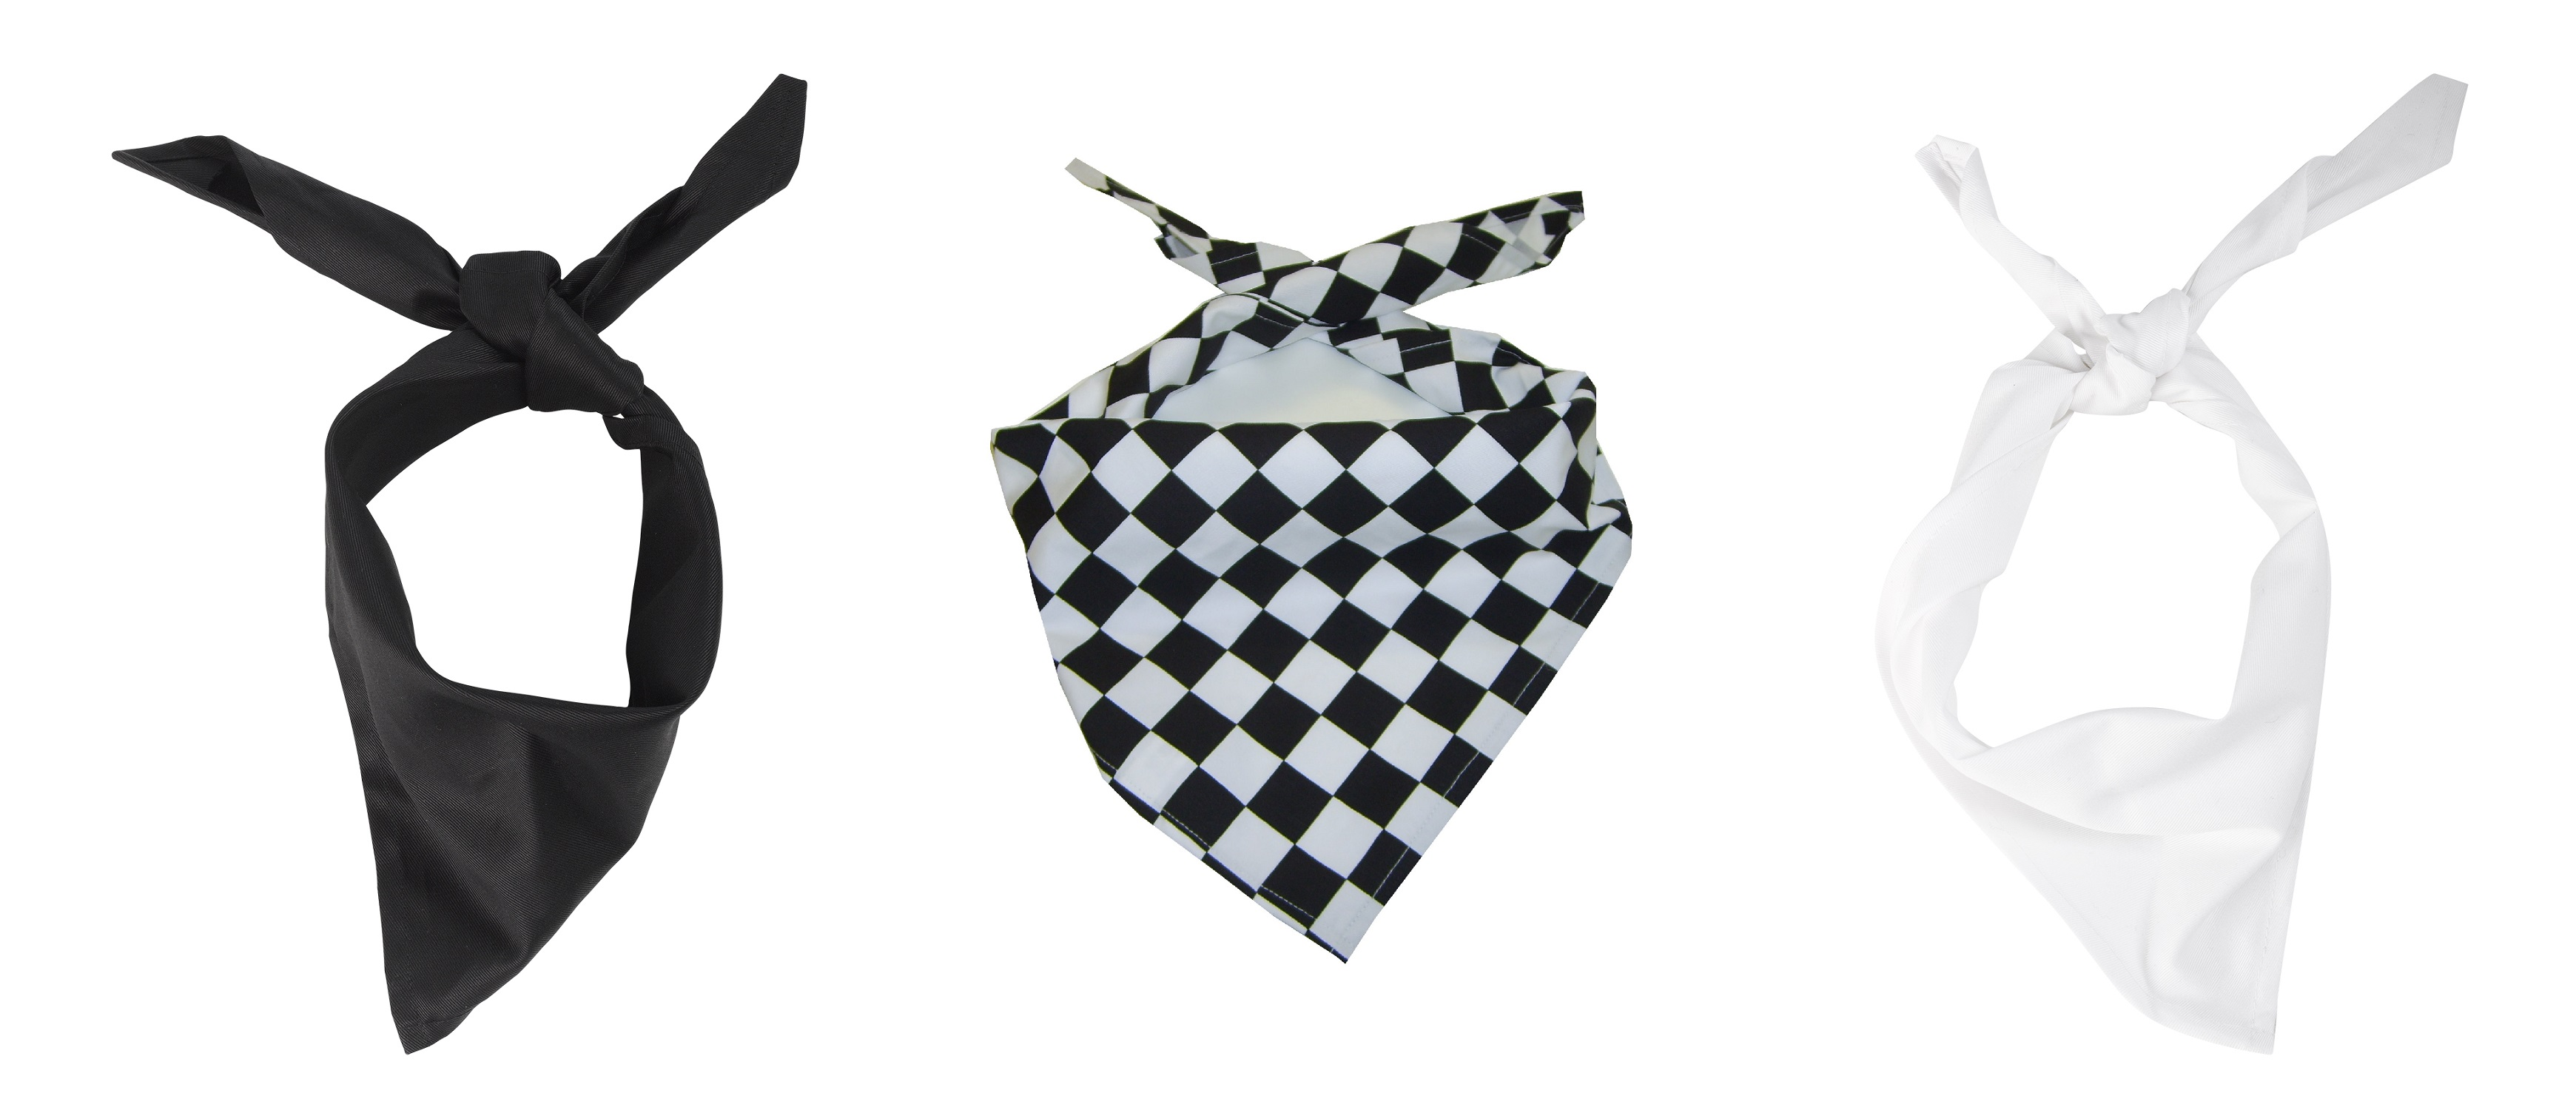 Cooks Neckerchief Polycotton Bandana Lightweight Black White Head Scarf 1  or 5 7d2fe6f9e1a